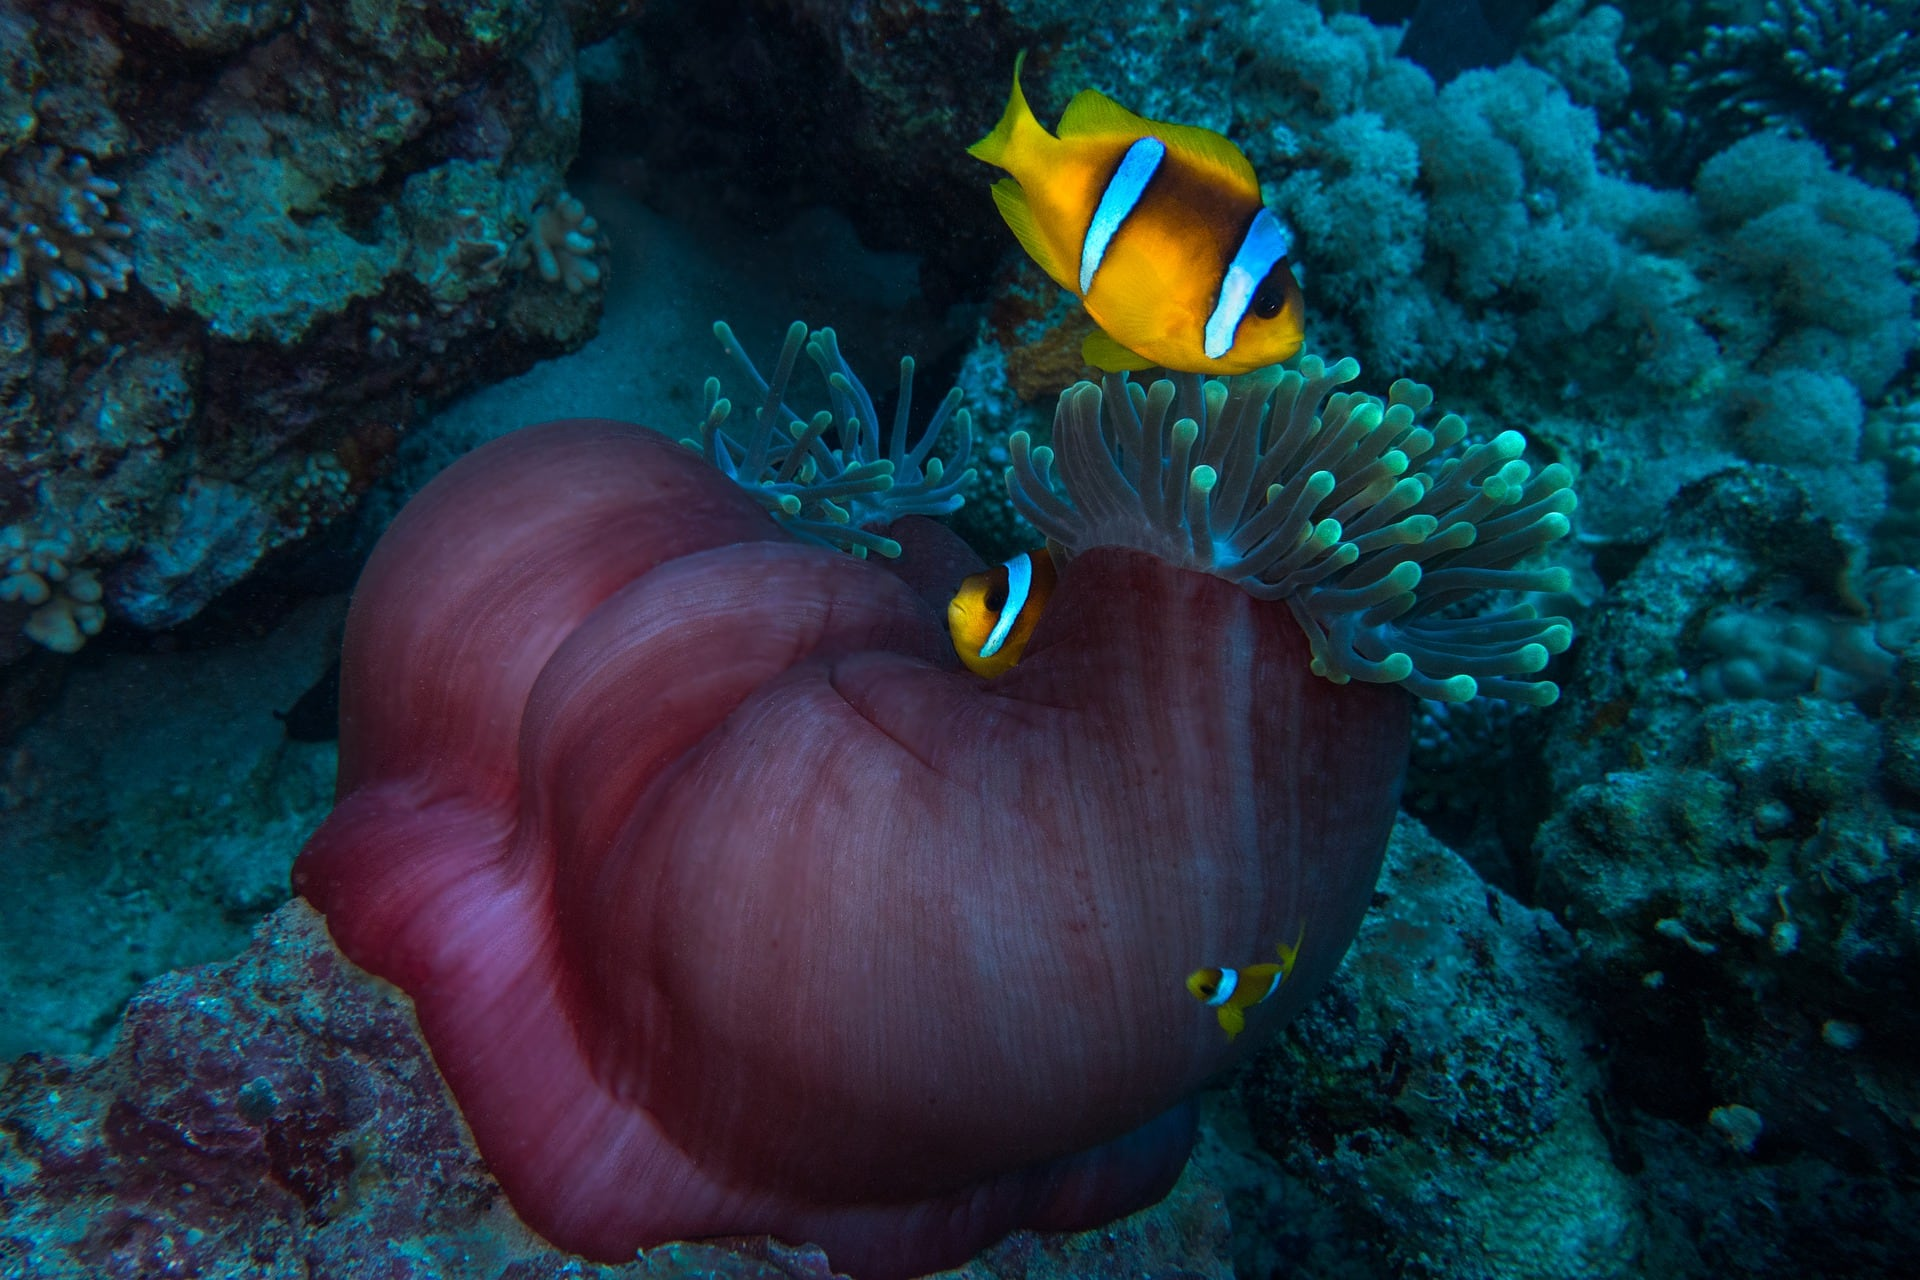 https://www.tropicalmarinecentre.com/sites/default/files/revslider/image/clown-anemonefish-4227162_1920_0.jpg